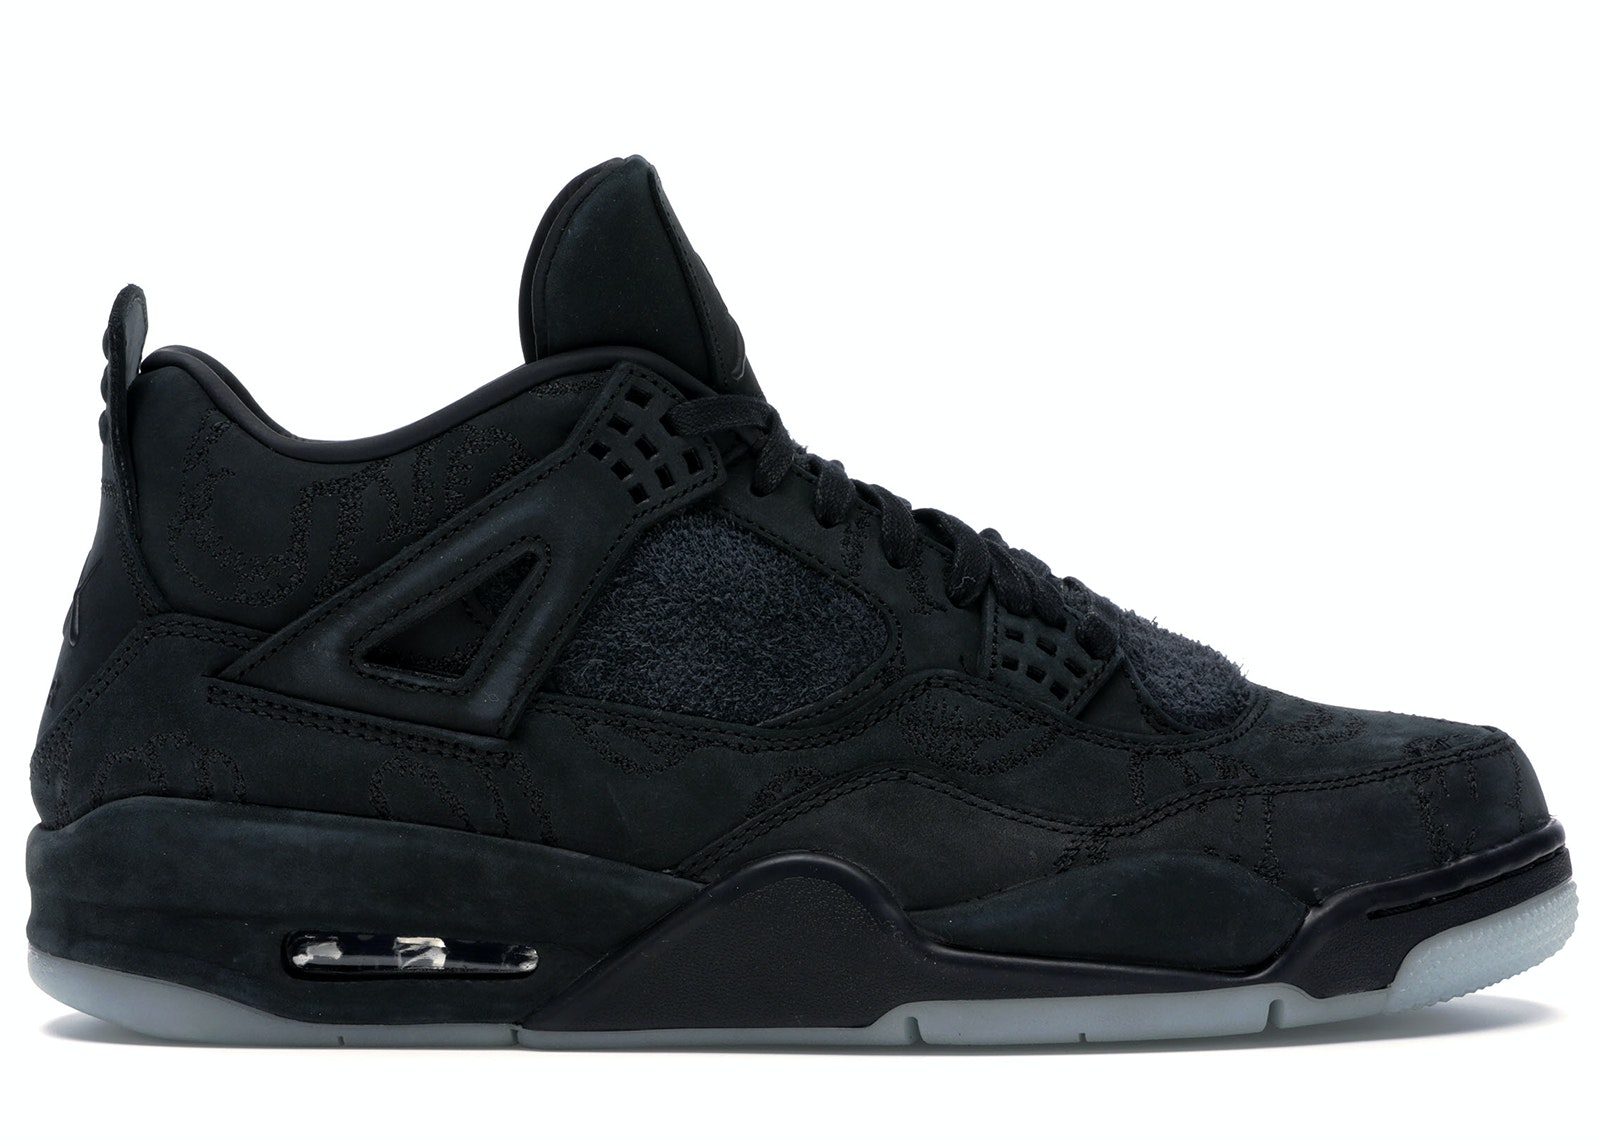 Jordan 4 Retro Kaws Black